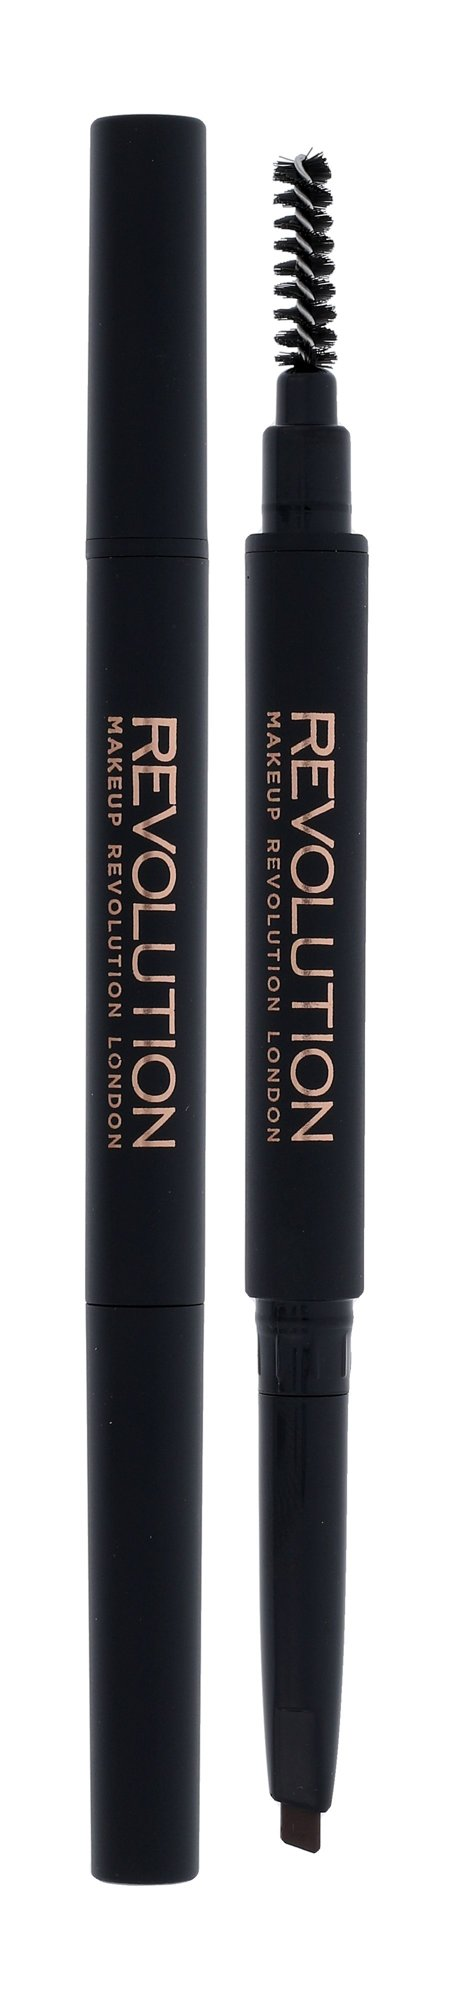 Makeup Revolution London Duo Brow Definer  (Tužka na obočí, W, 0,15 g)